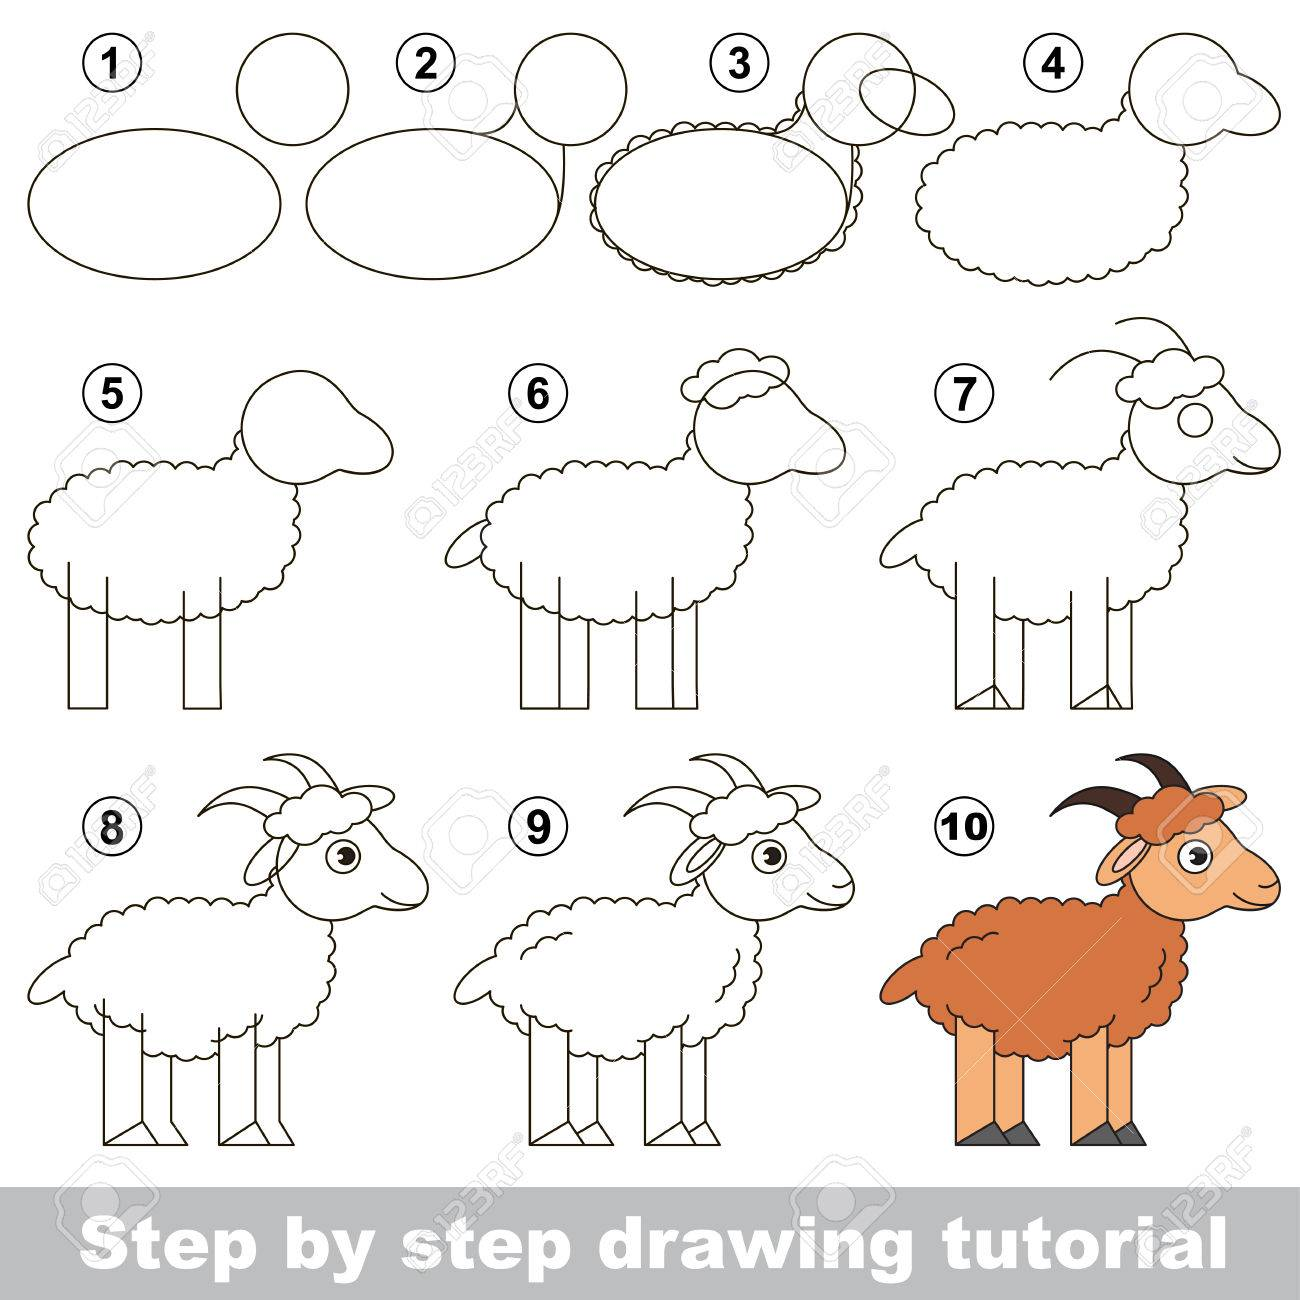 Easy Goat Drawing At Getdrawings Com Free For Personal Use Easy